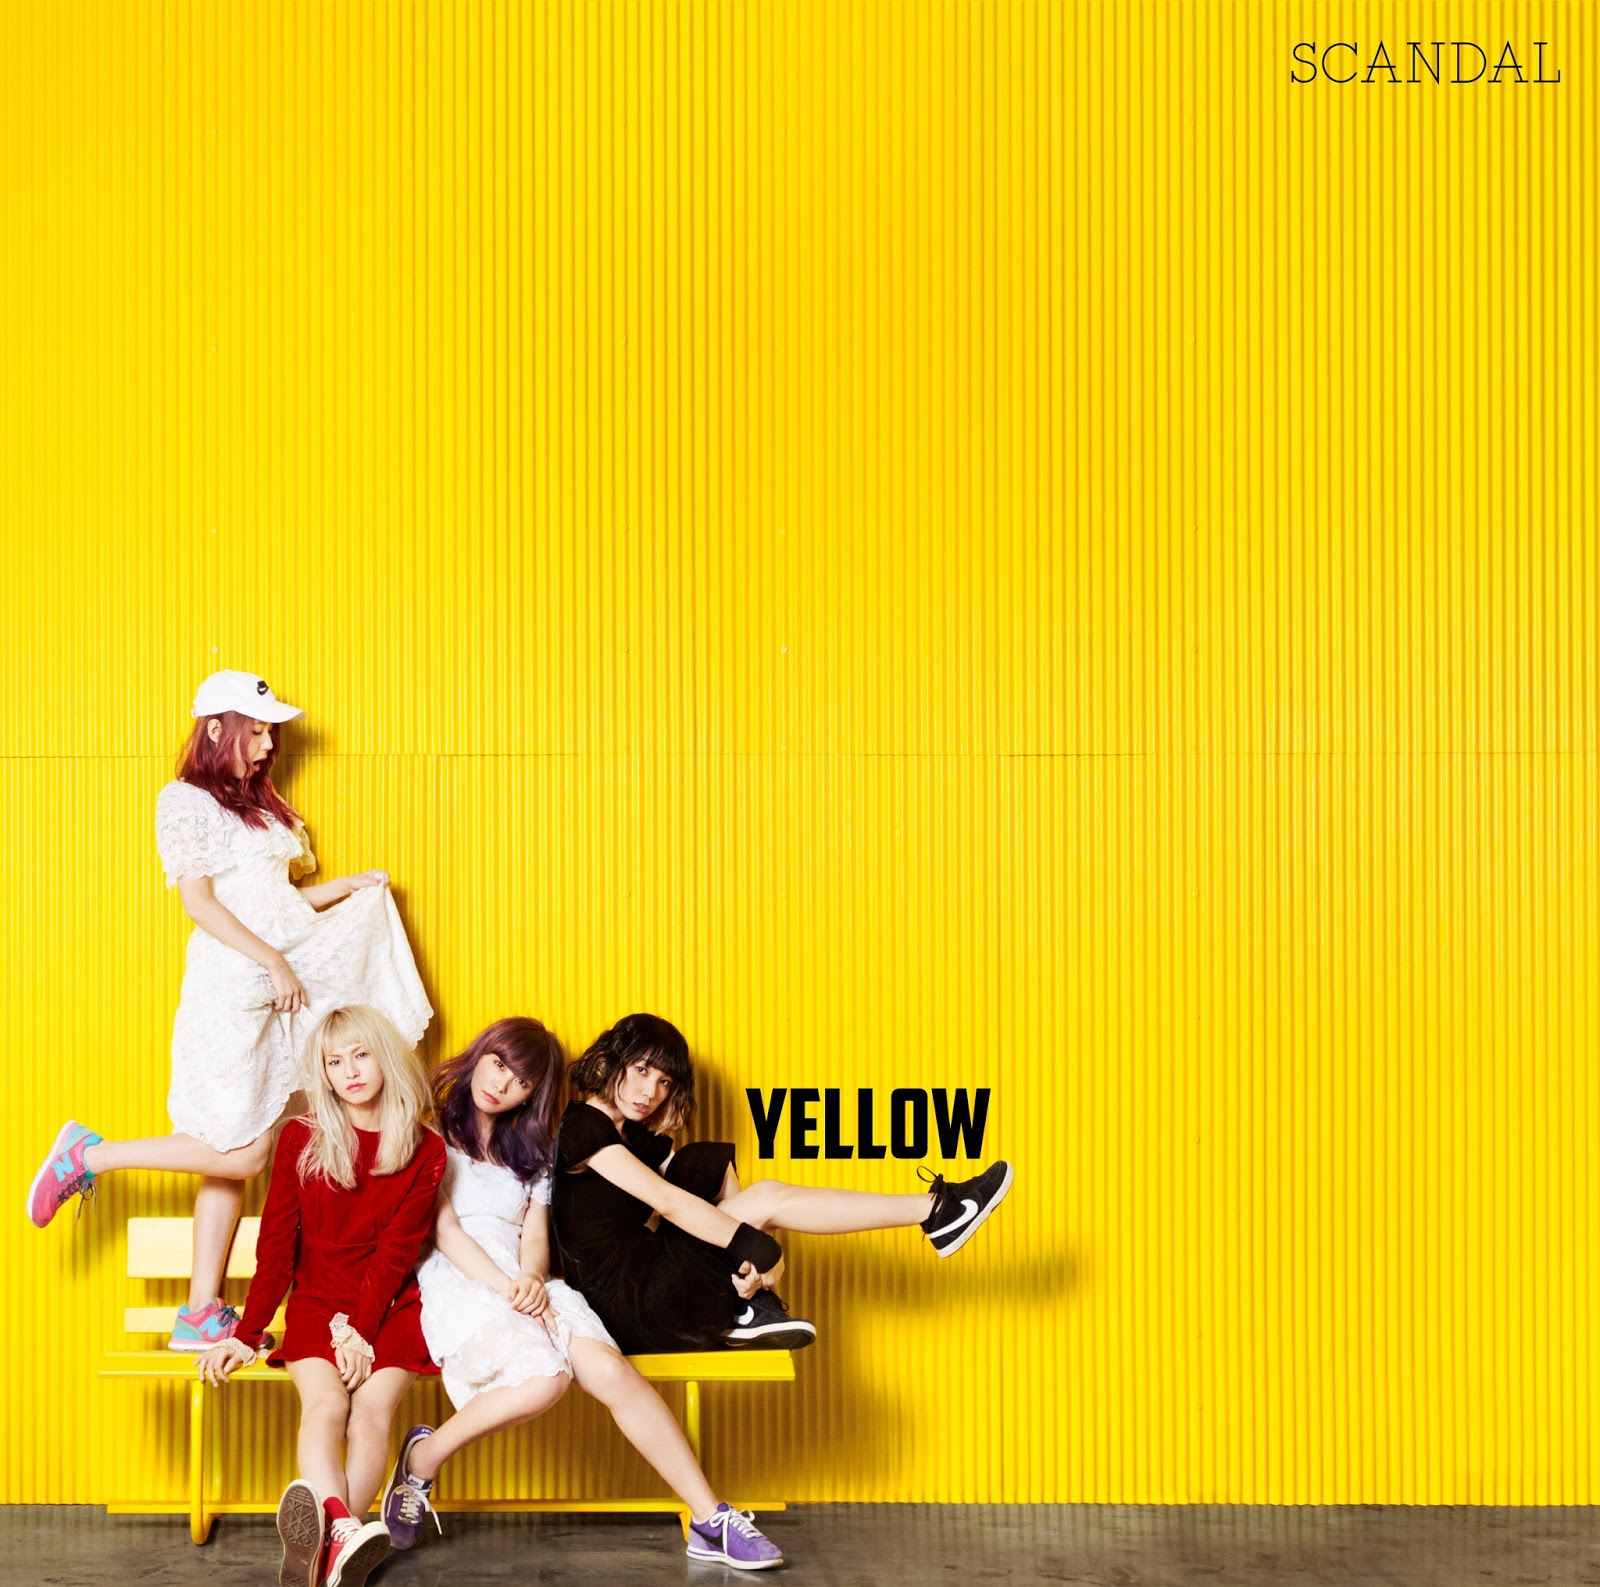 SCANDAL YELLOW New Album 2016